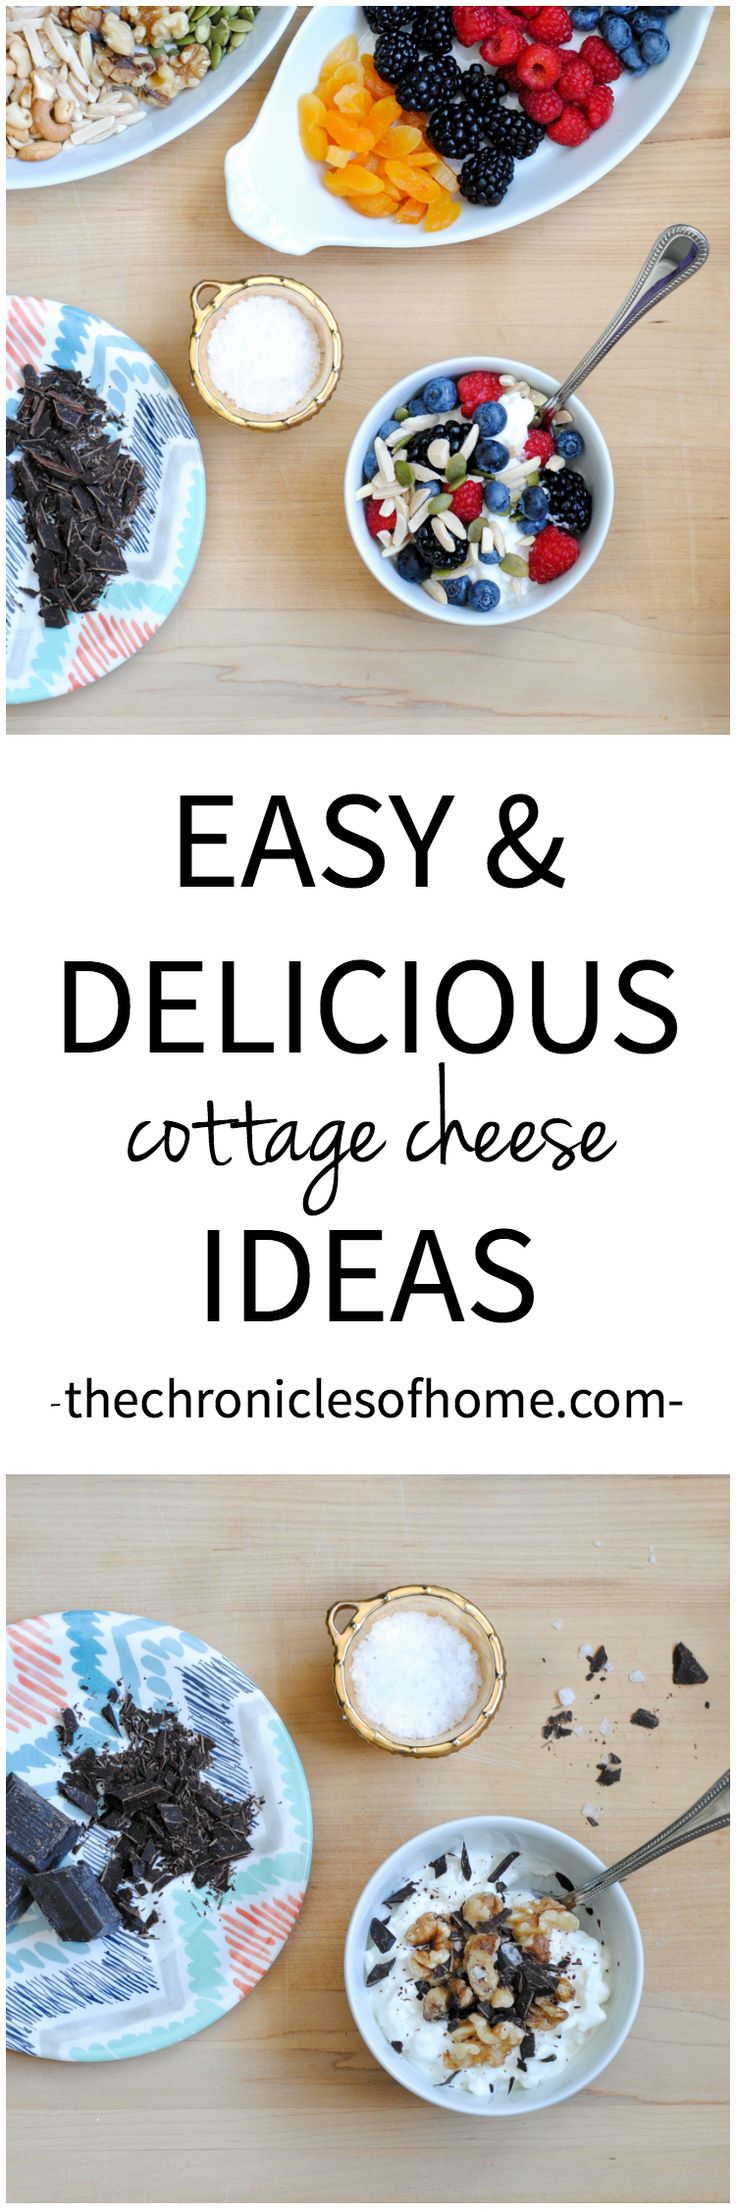 Cottage Cheese Recipes Or What To Do With Cottage Cheese When You Don T Know What To Do With Cottage Cheese